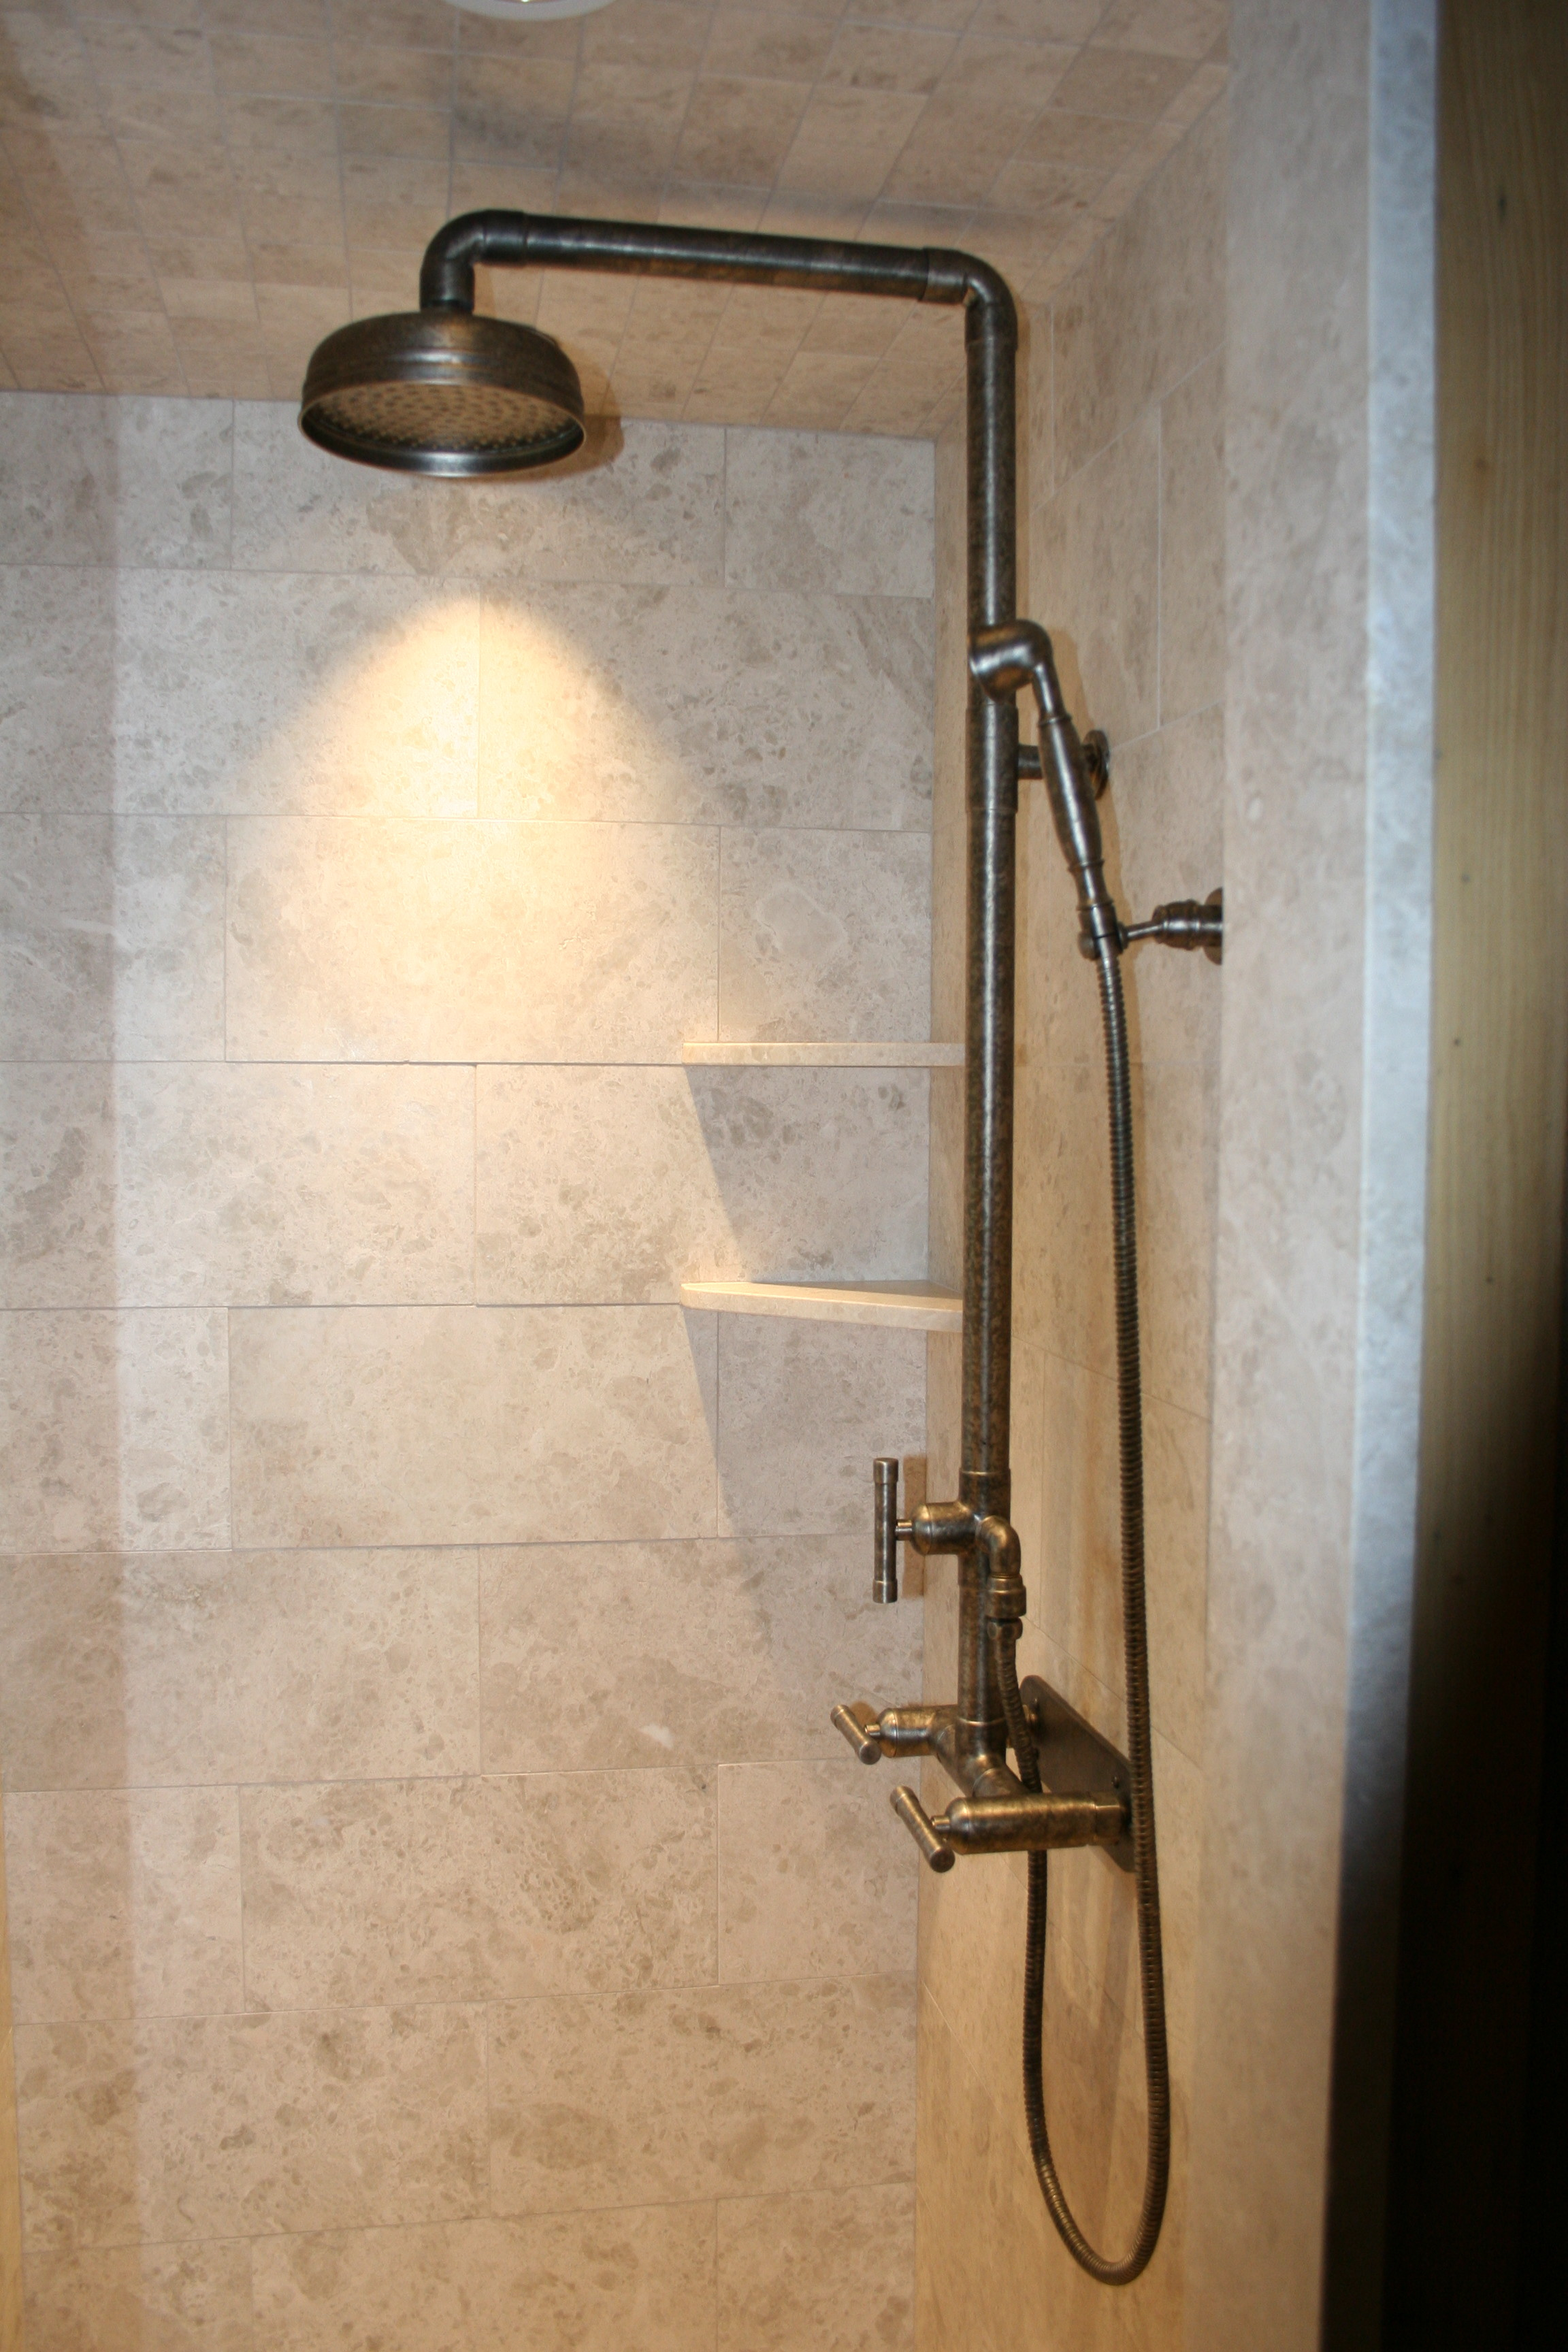 Exposed Pipe Shower | Home Decor & Renovation Ideas